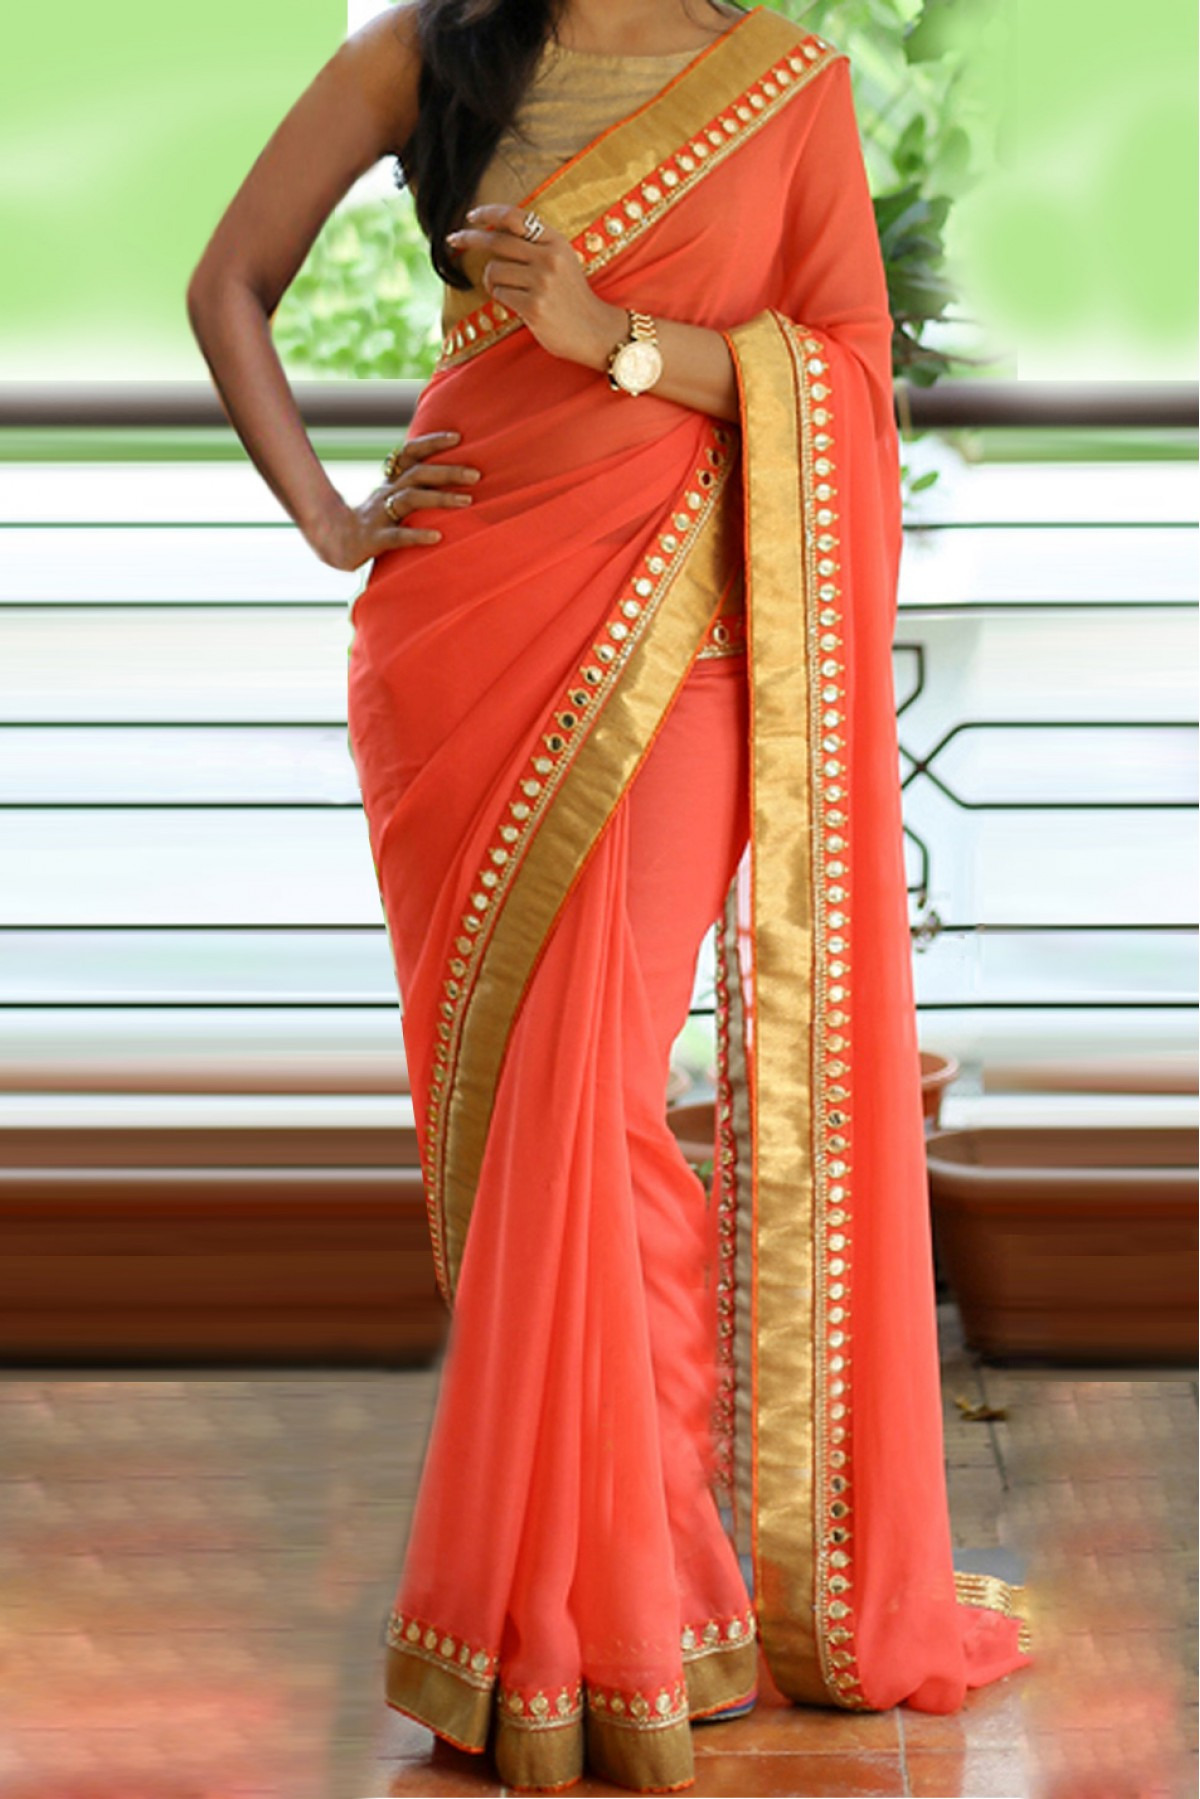 Party Wear Sarees 60 gm georgette party wear saree in peach colour BHKFLLH